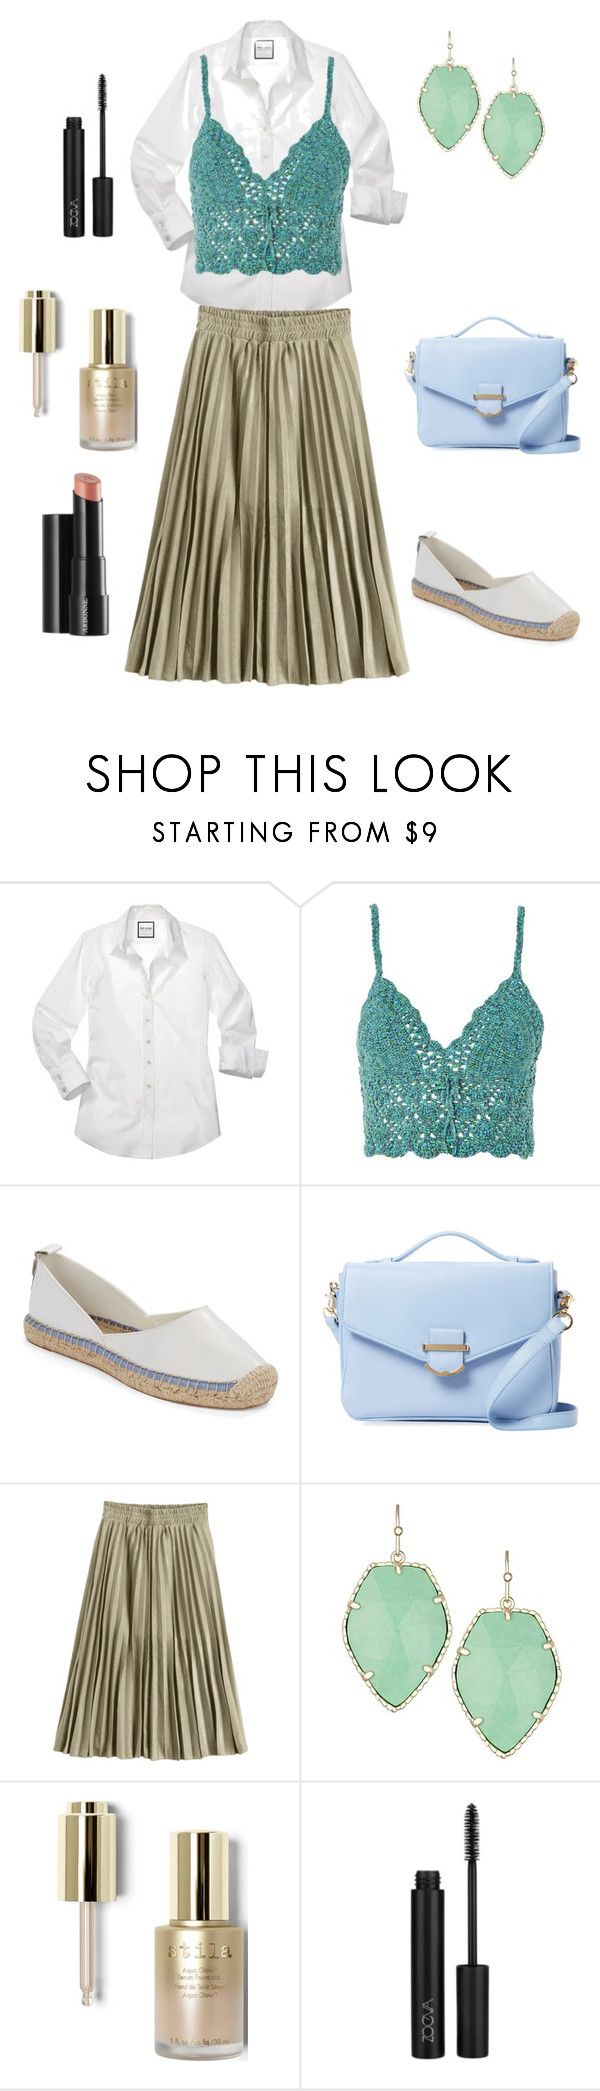 """""""Shirt + Bralet"""" by april-1884 ❤ liked on Polyvore featuring Topshop, French Connection, Cynthia Rowley, Kendra Scott, Arbonne and Stila"""